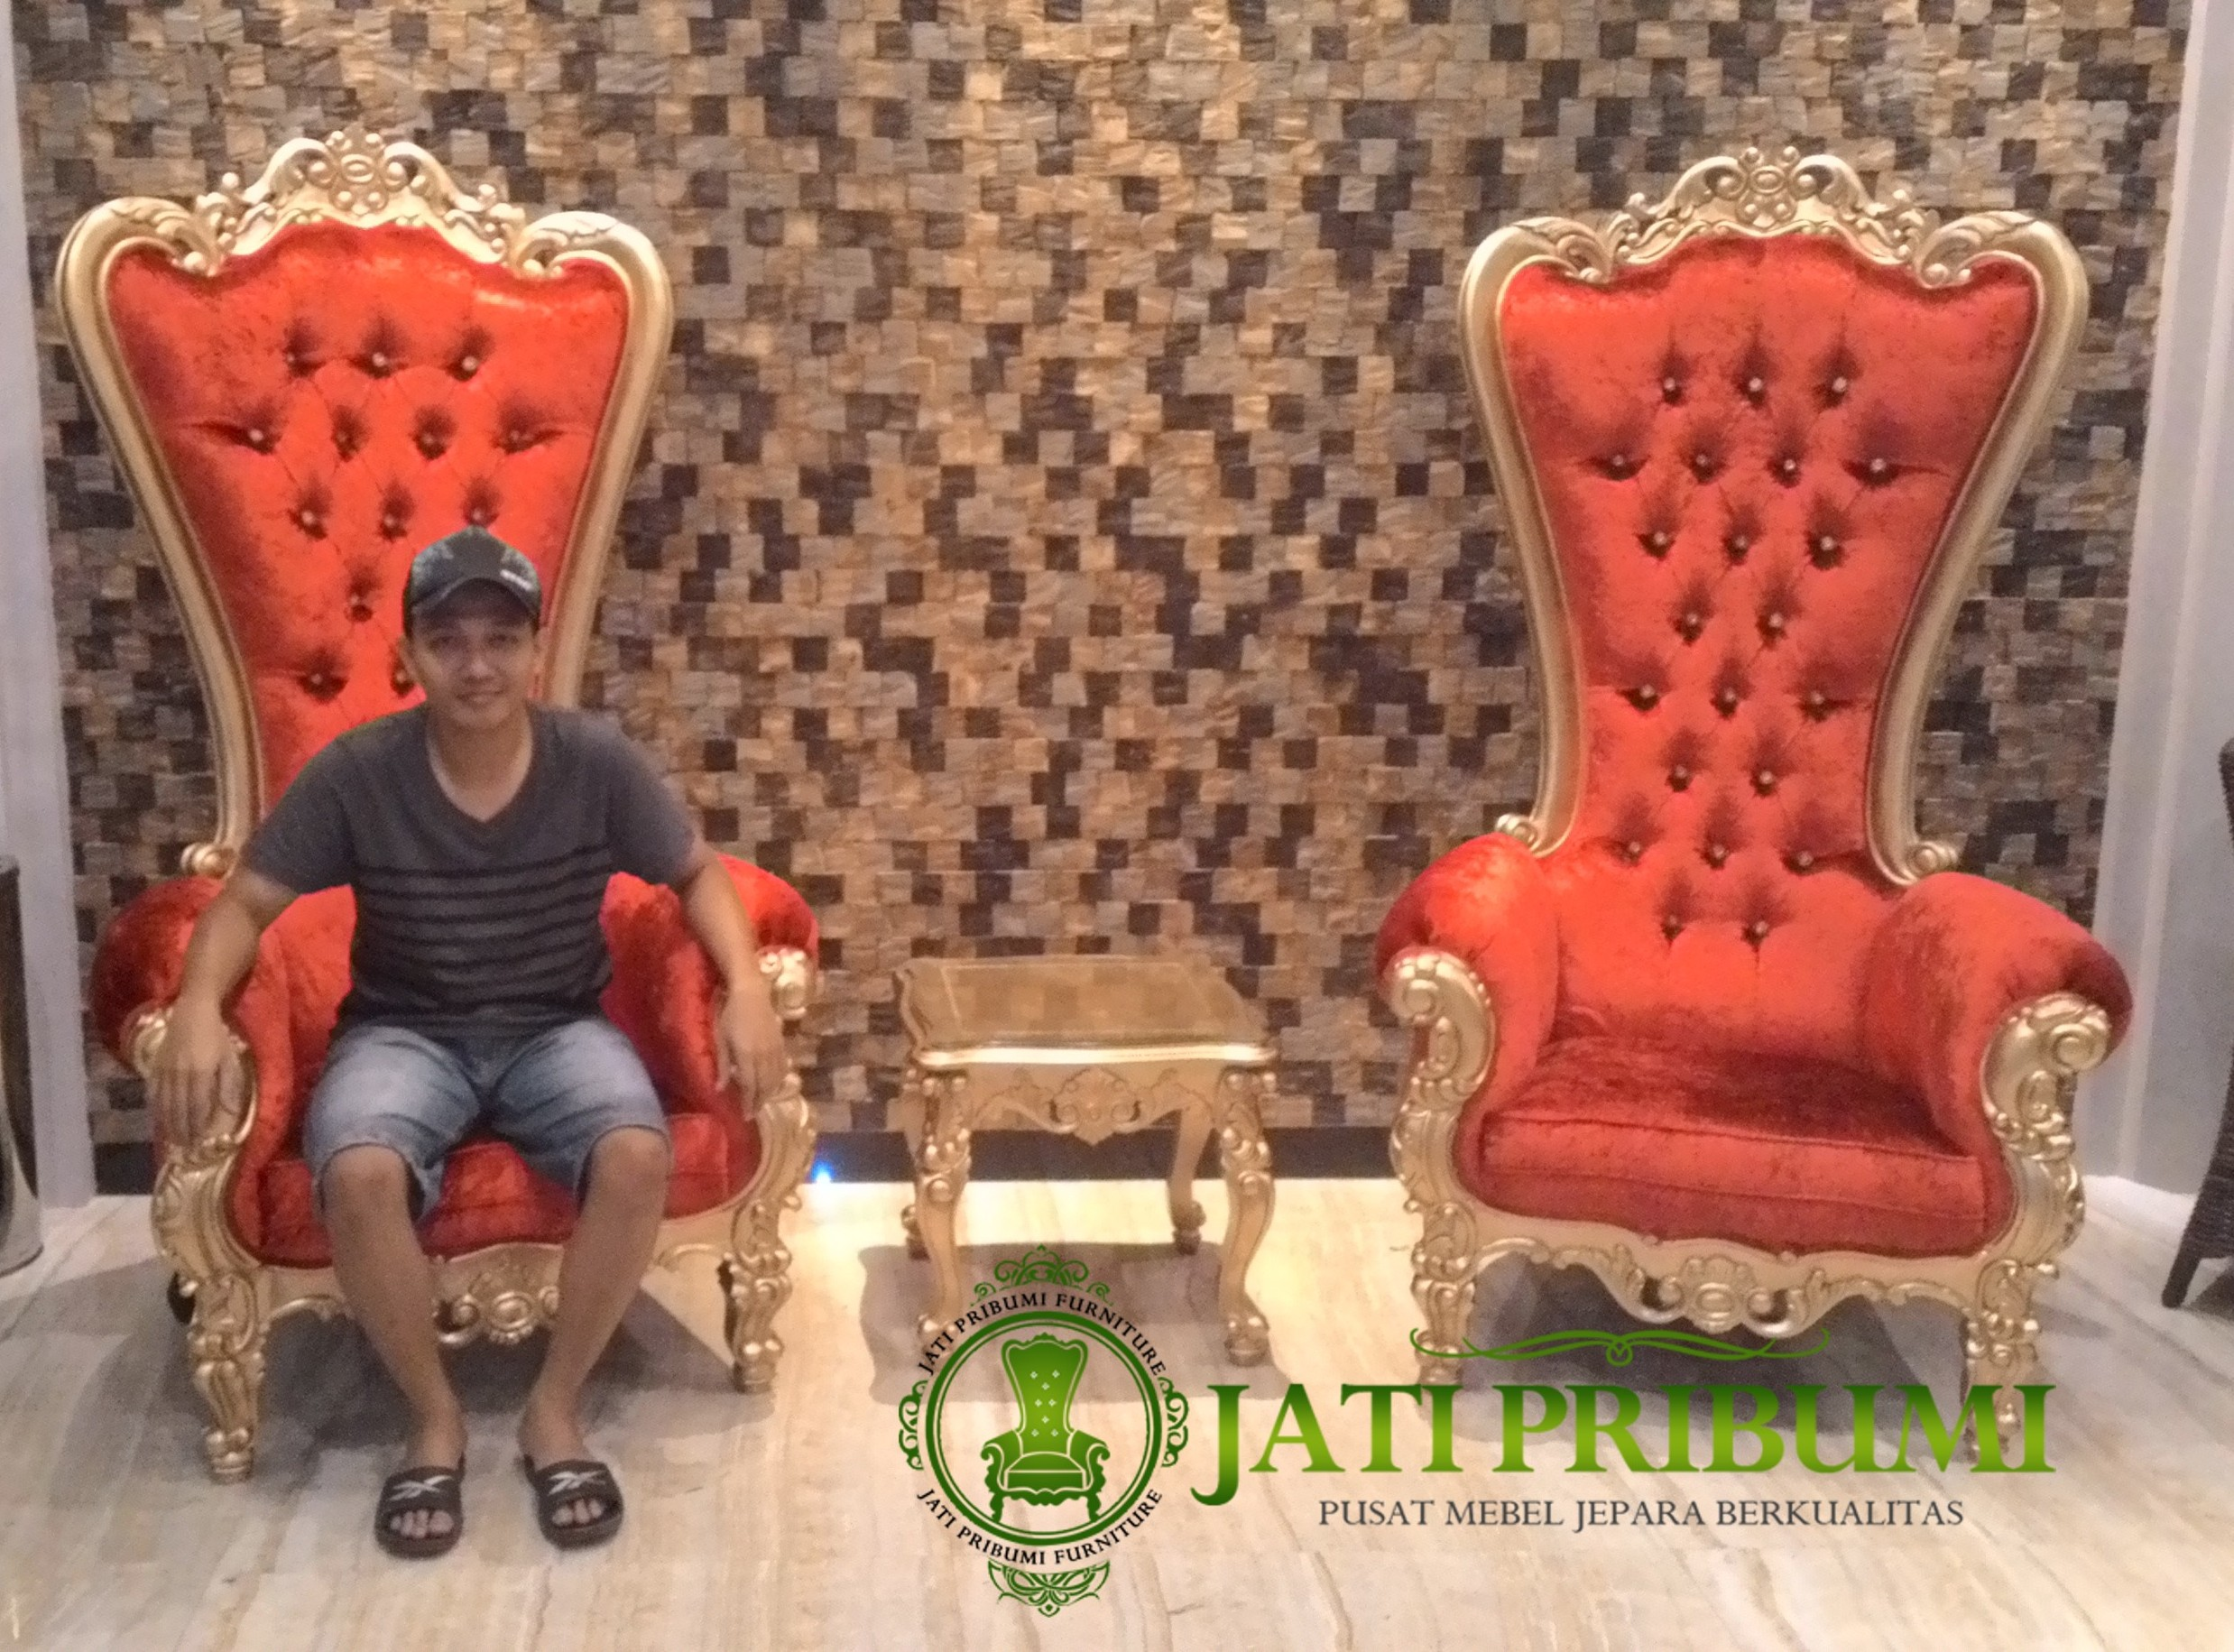 owner Jati Pribumi Furniture